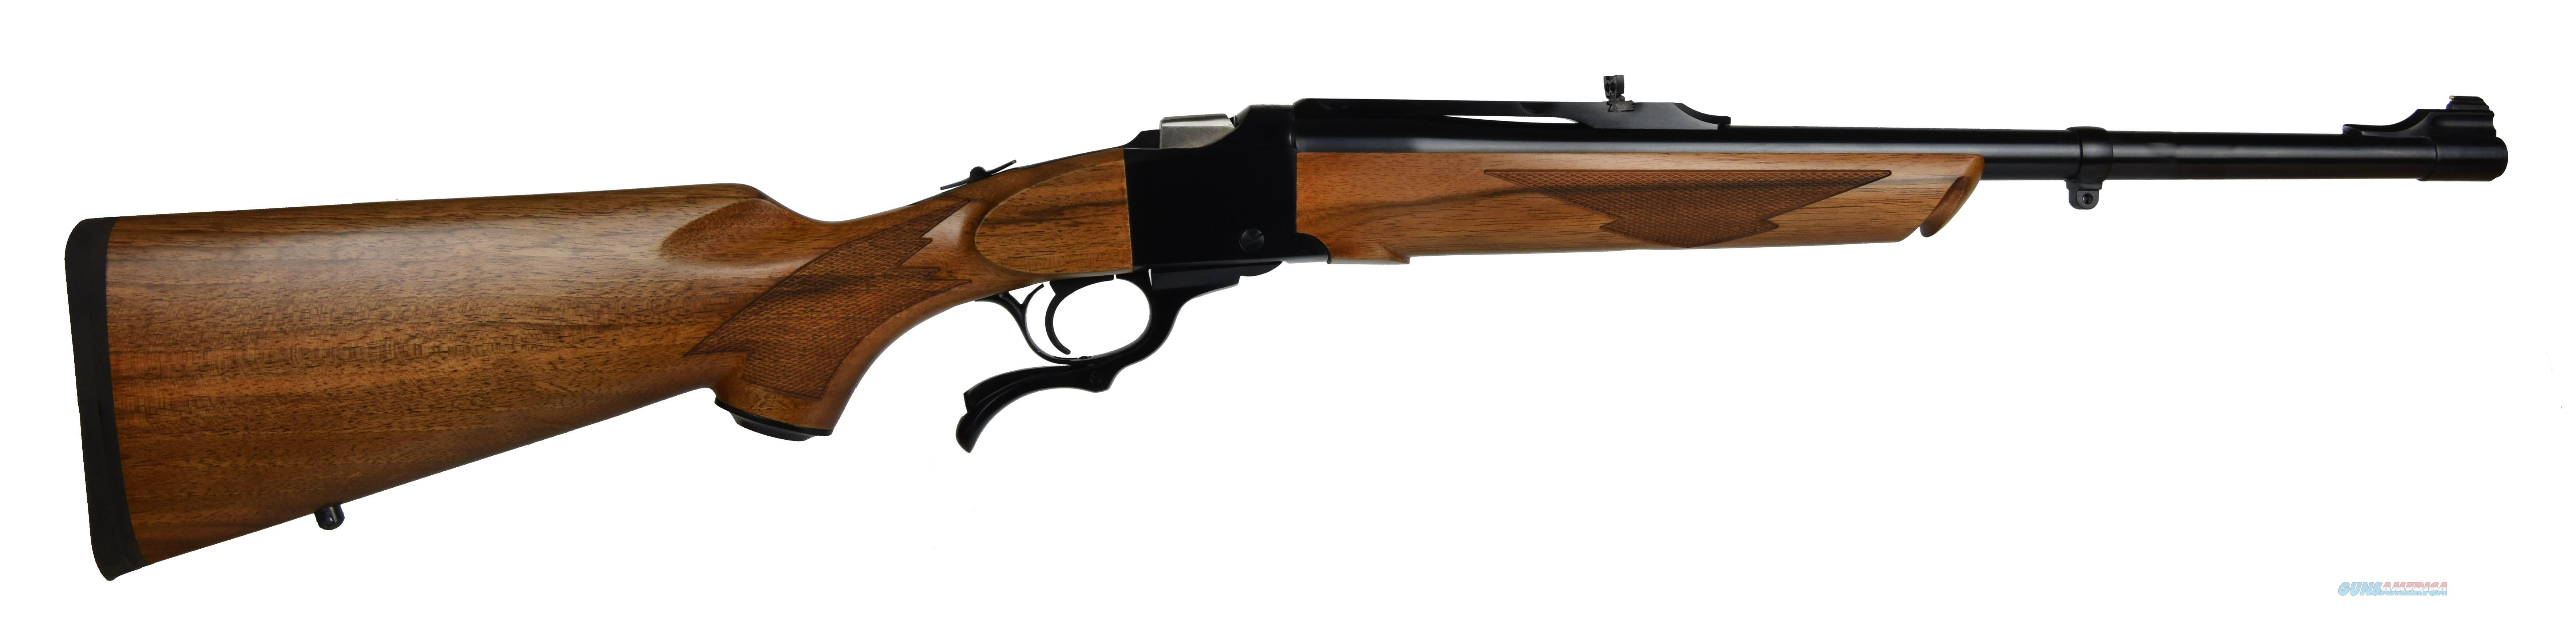 Ruger 1S MED SPORT 460SW BL/WD 20 21310 BLUE  WALNUT/SIGHTS  Guns > Rifles > R Misc Rifles